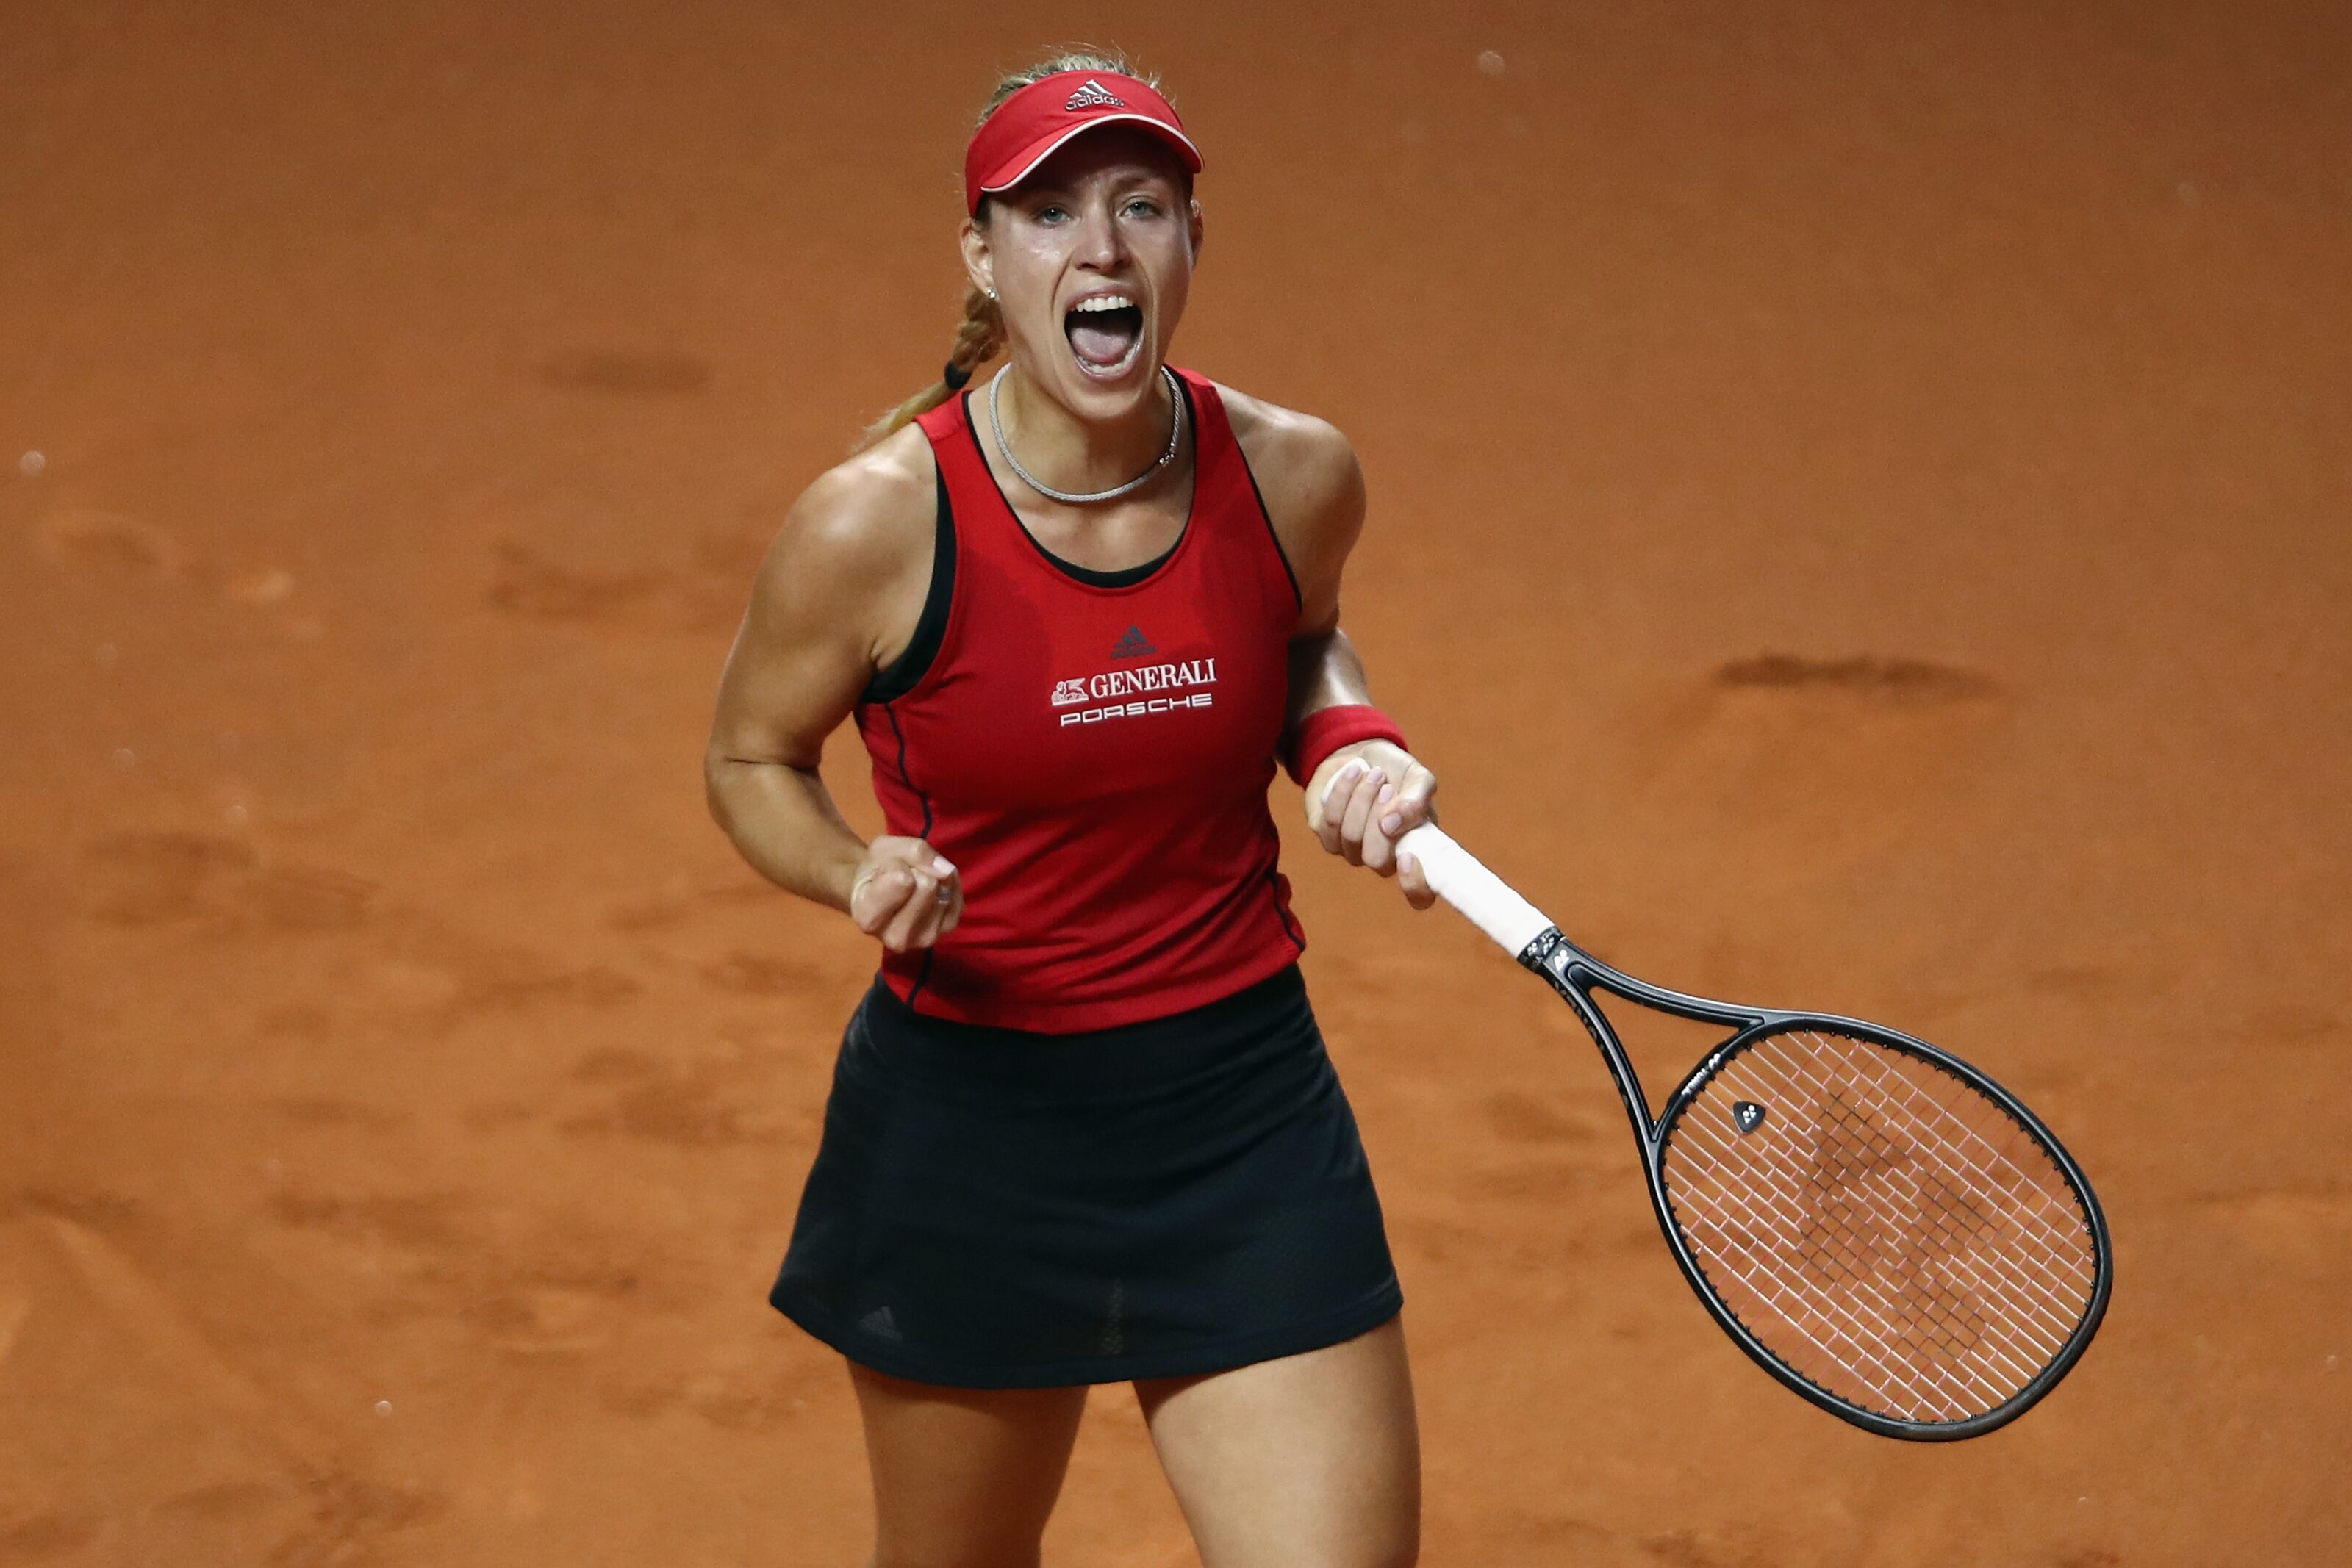 Angelique Kerber has momentum heading into French Open